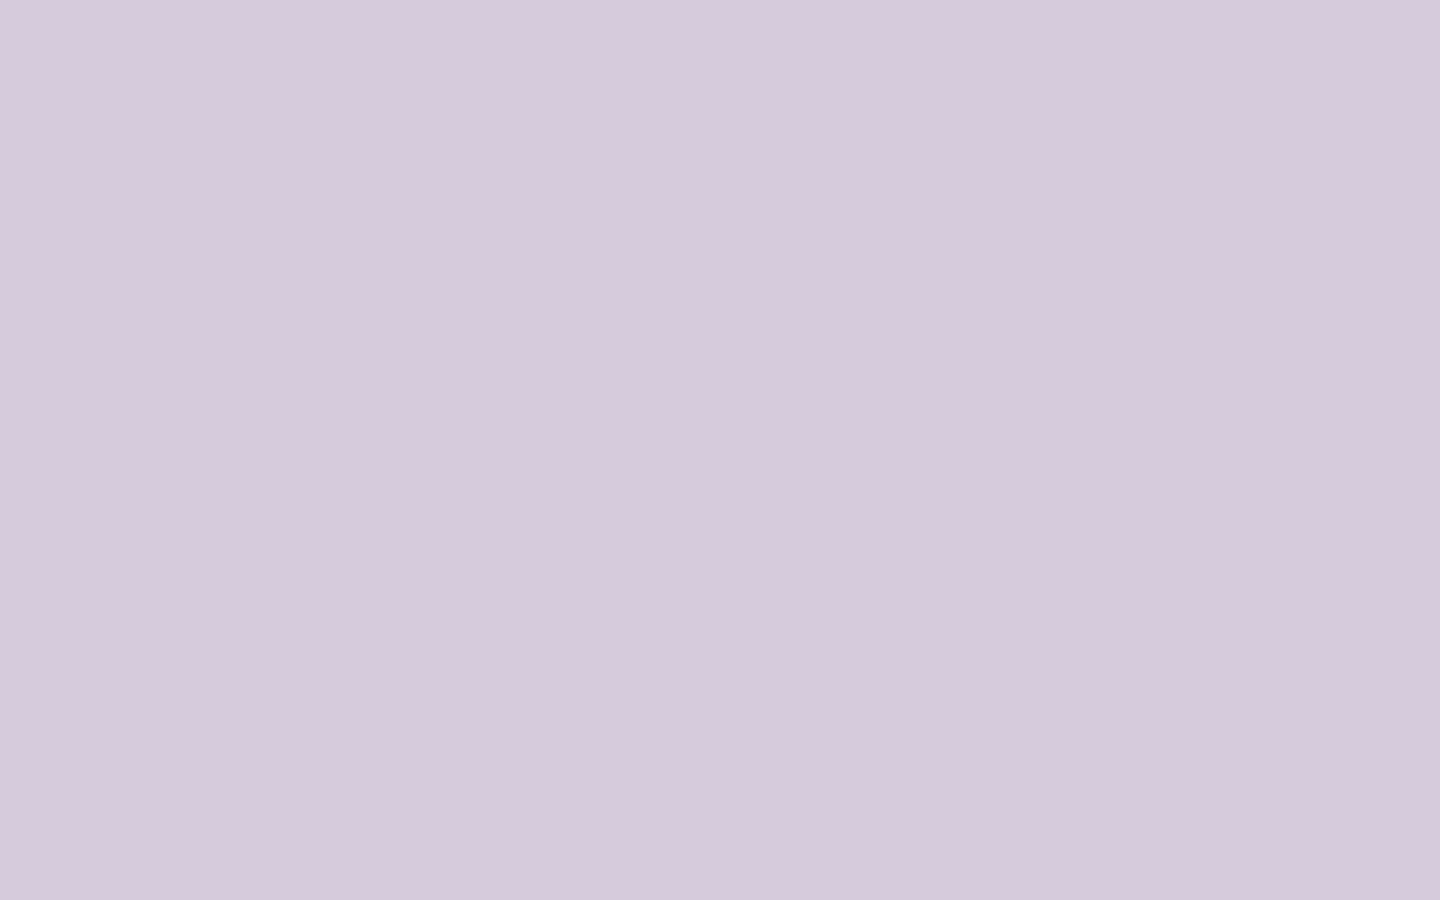 1440x900 Languid Lavender Solid Color Background